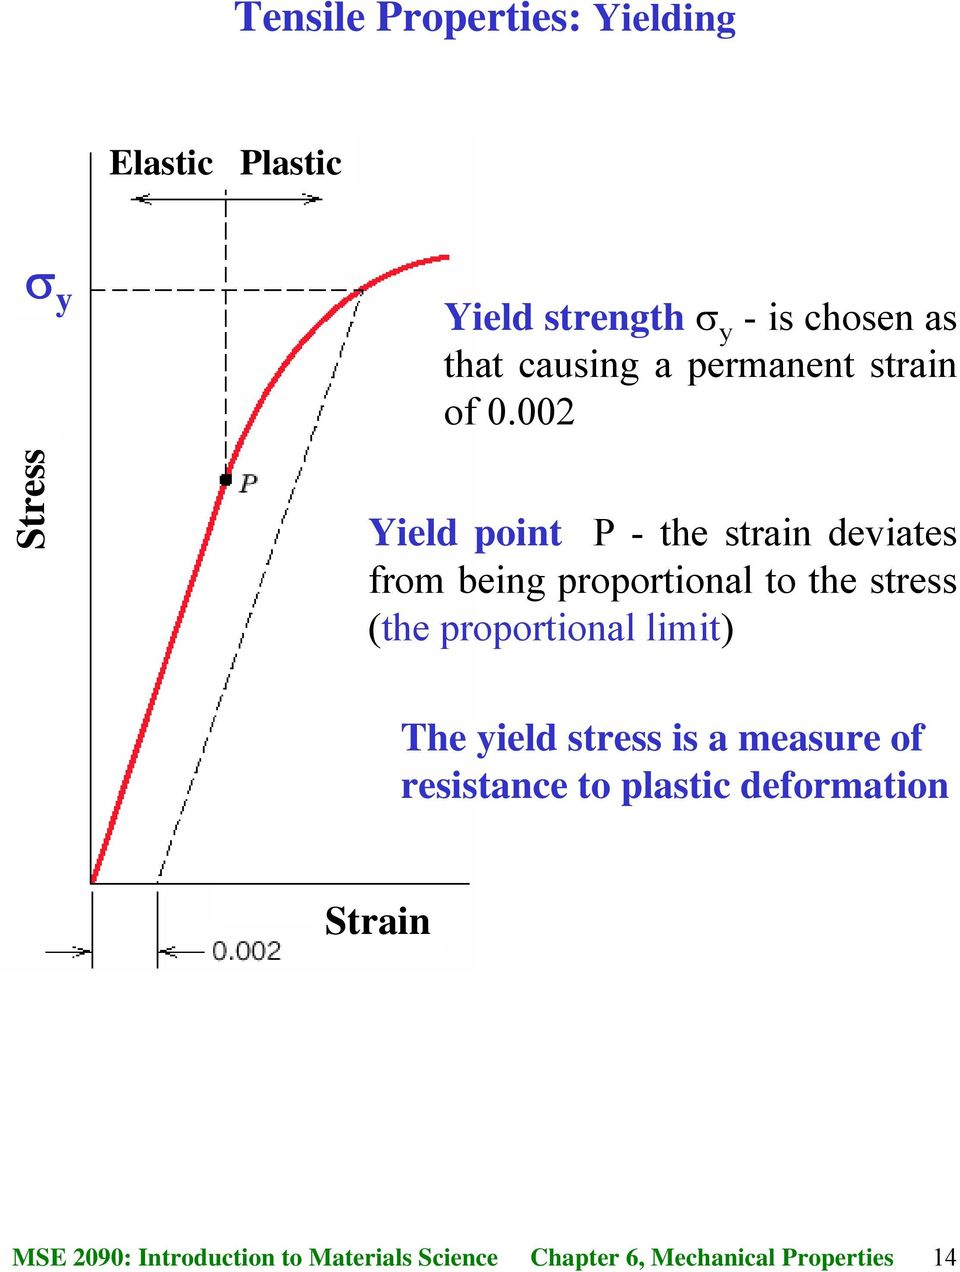 002 Stress Yield point P - the strain deviates from being proportional to